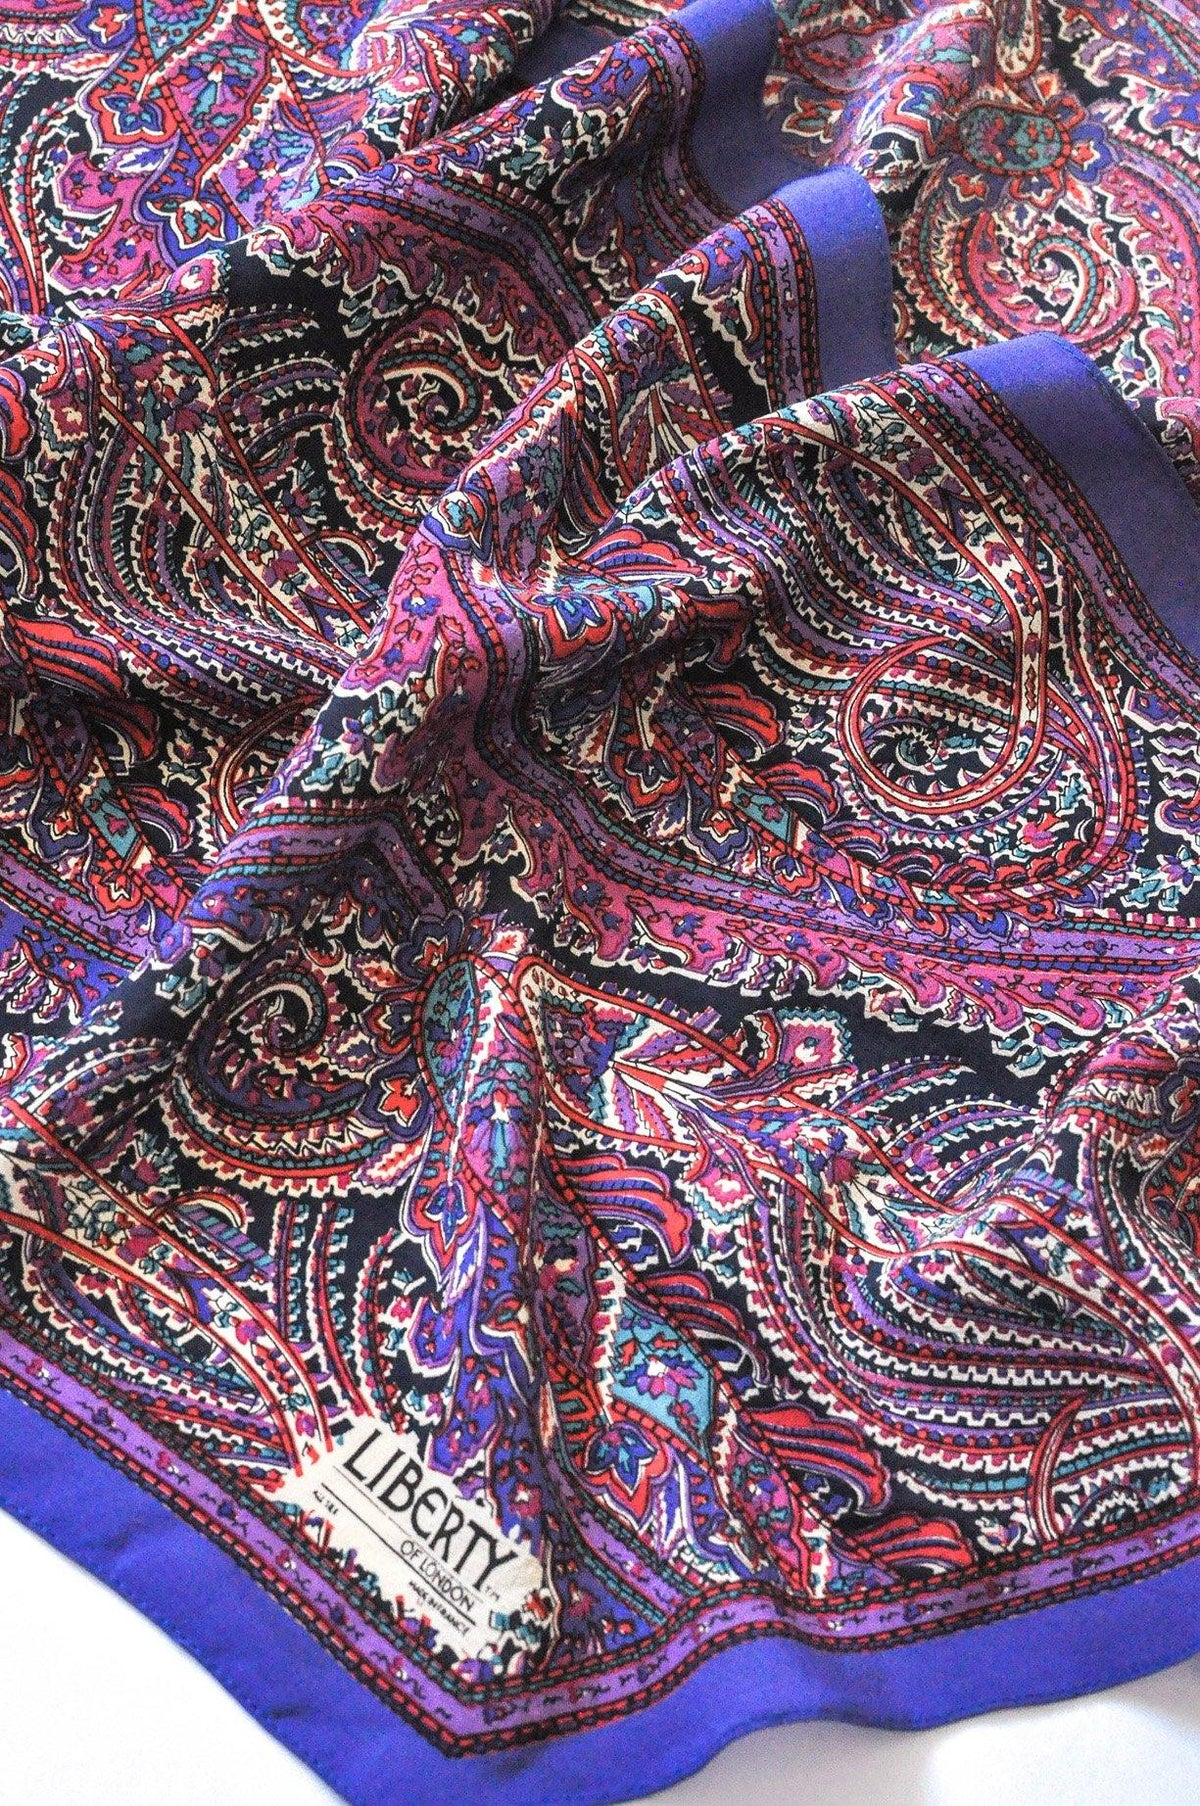 Vintage Liberty of London Paisley Rectangle Scarf from Sweet & Spark.